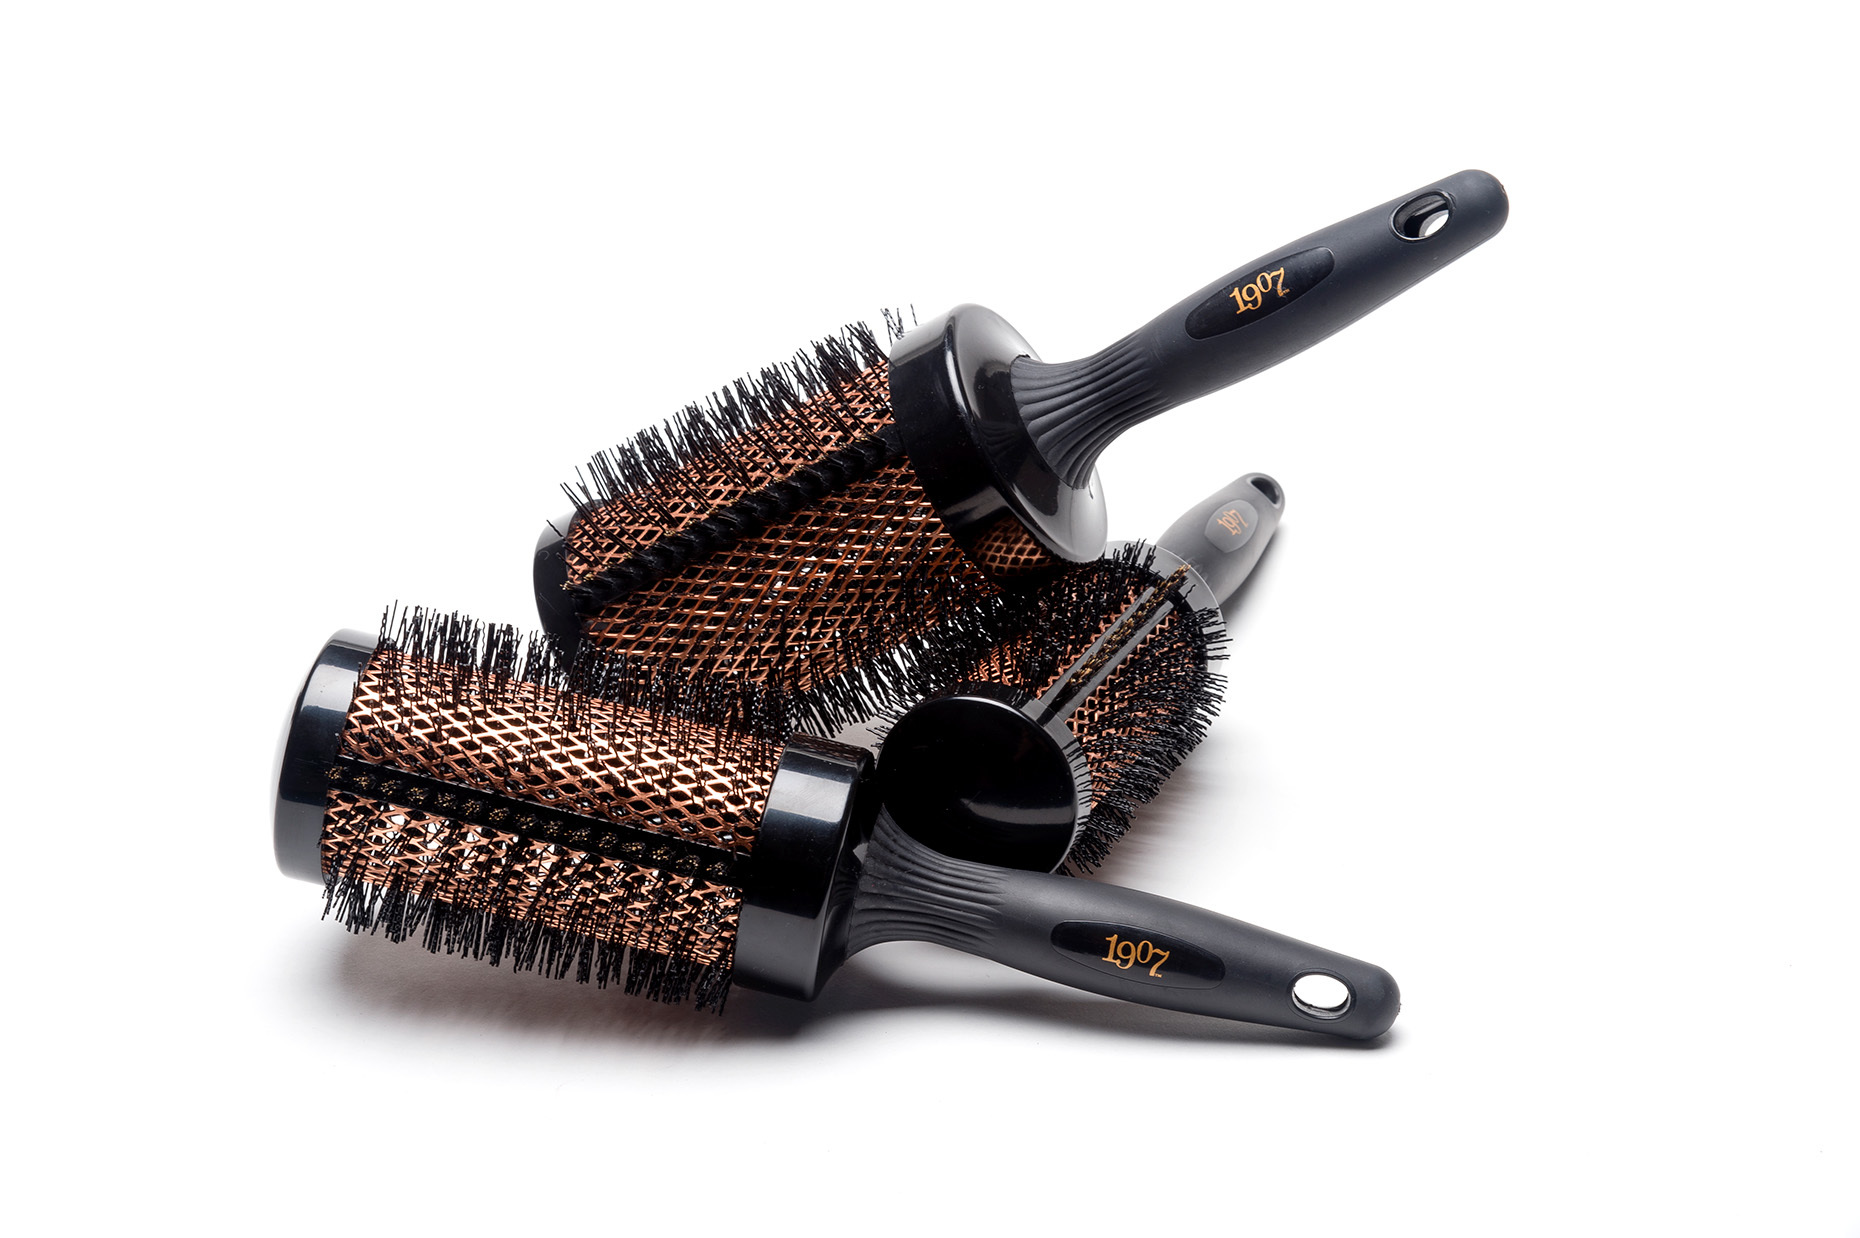 FROMM_1907_Beauty-Products_RoundBrush-Set_RHanelPhotography